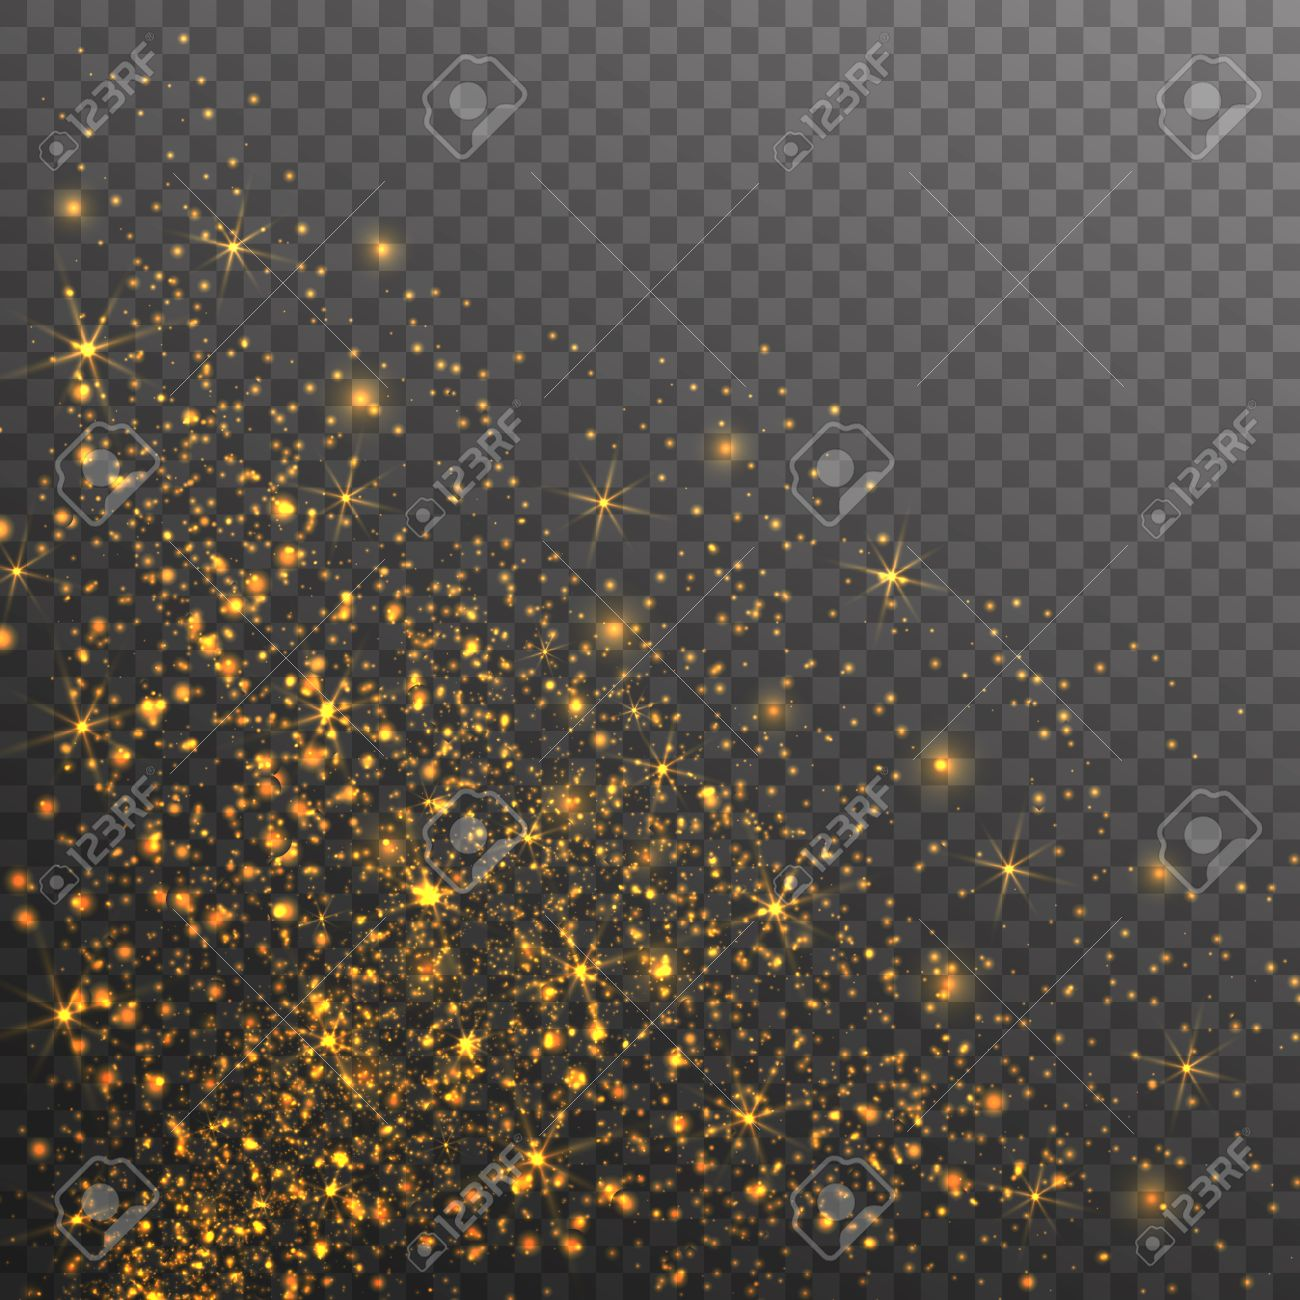 Gold glitter bright vector transparent background golden sparkles - Gold Glitter Sparkles On Transparent Background Vector Golden Dust Texture Twinkling Confetti Shimmering